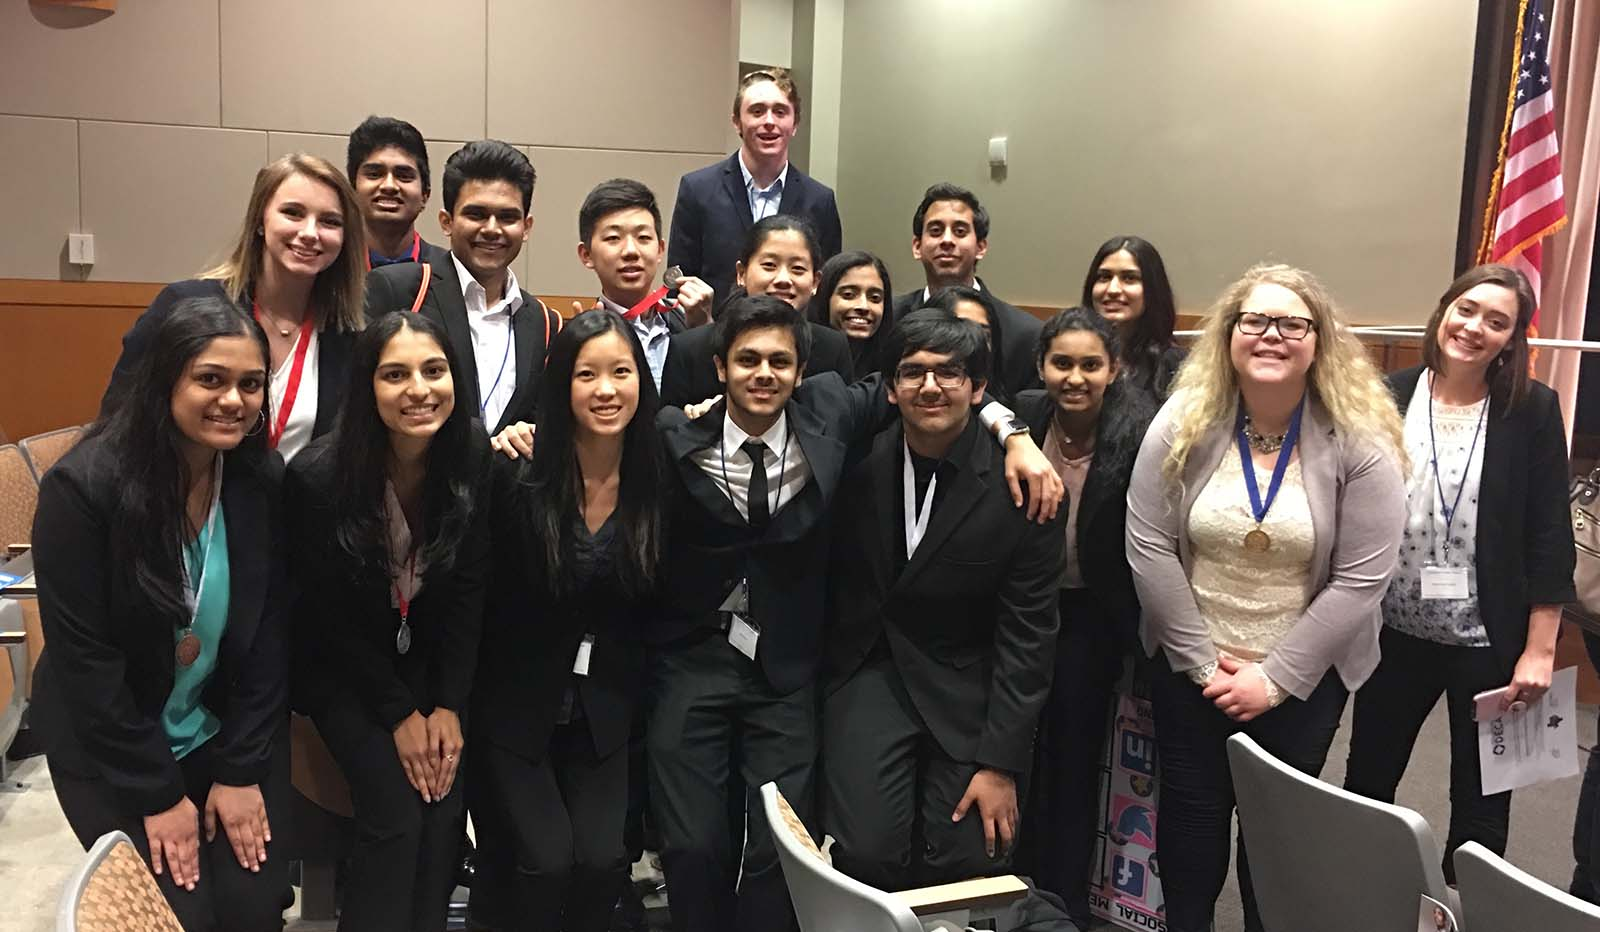 Several members of the UNT DECA team have qualified for the 2017 Collegiate DECA International Career Development Conference.